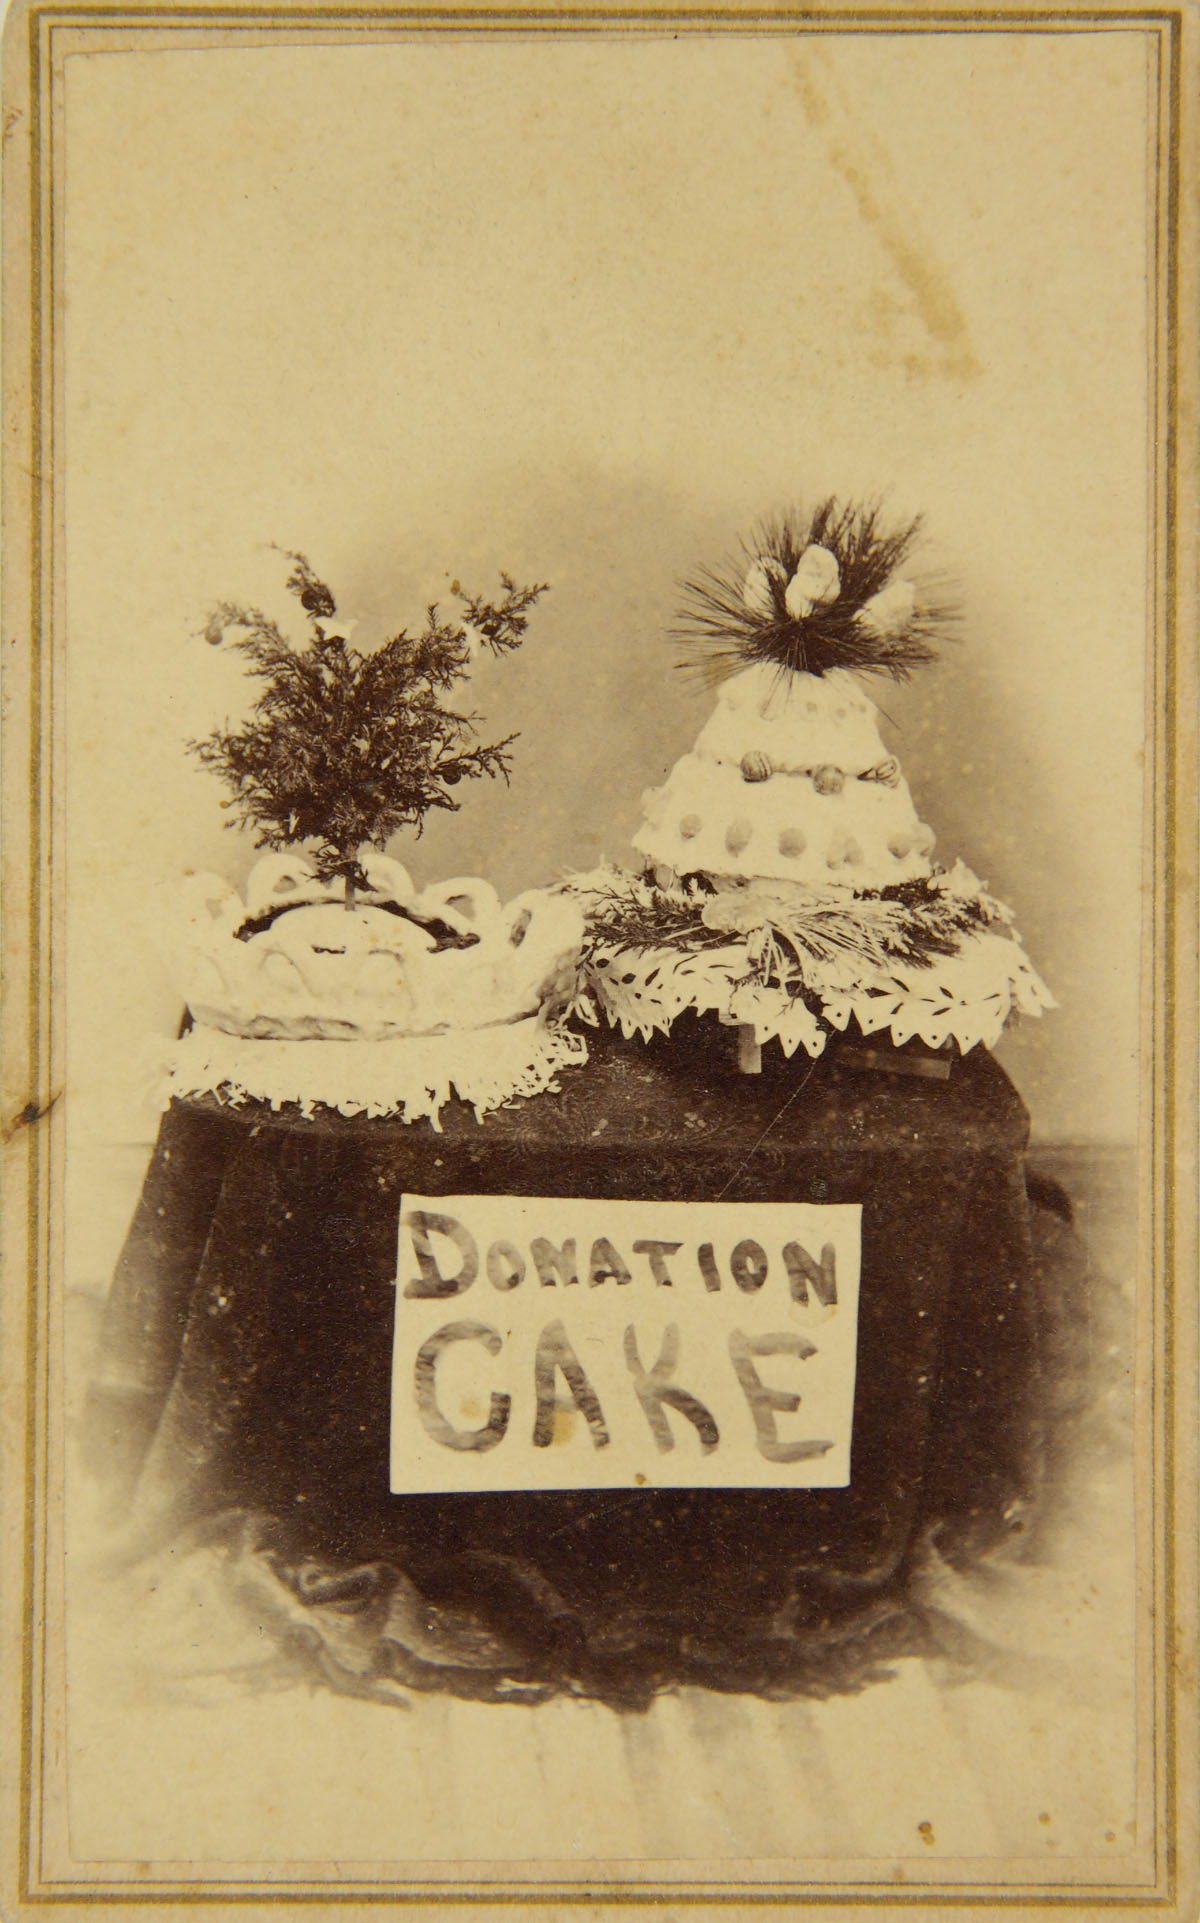 Unknown Photographer American Carte De Visite Donation Cake Late